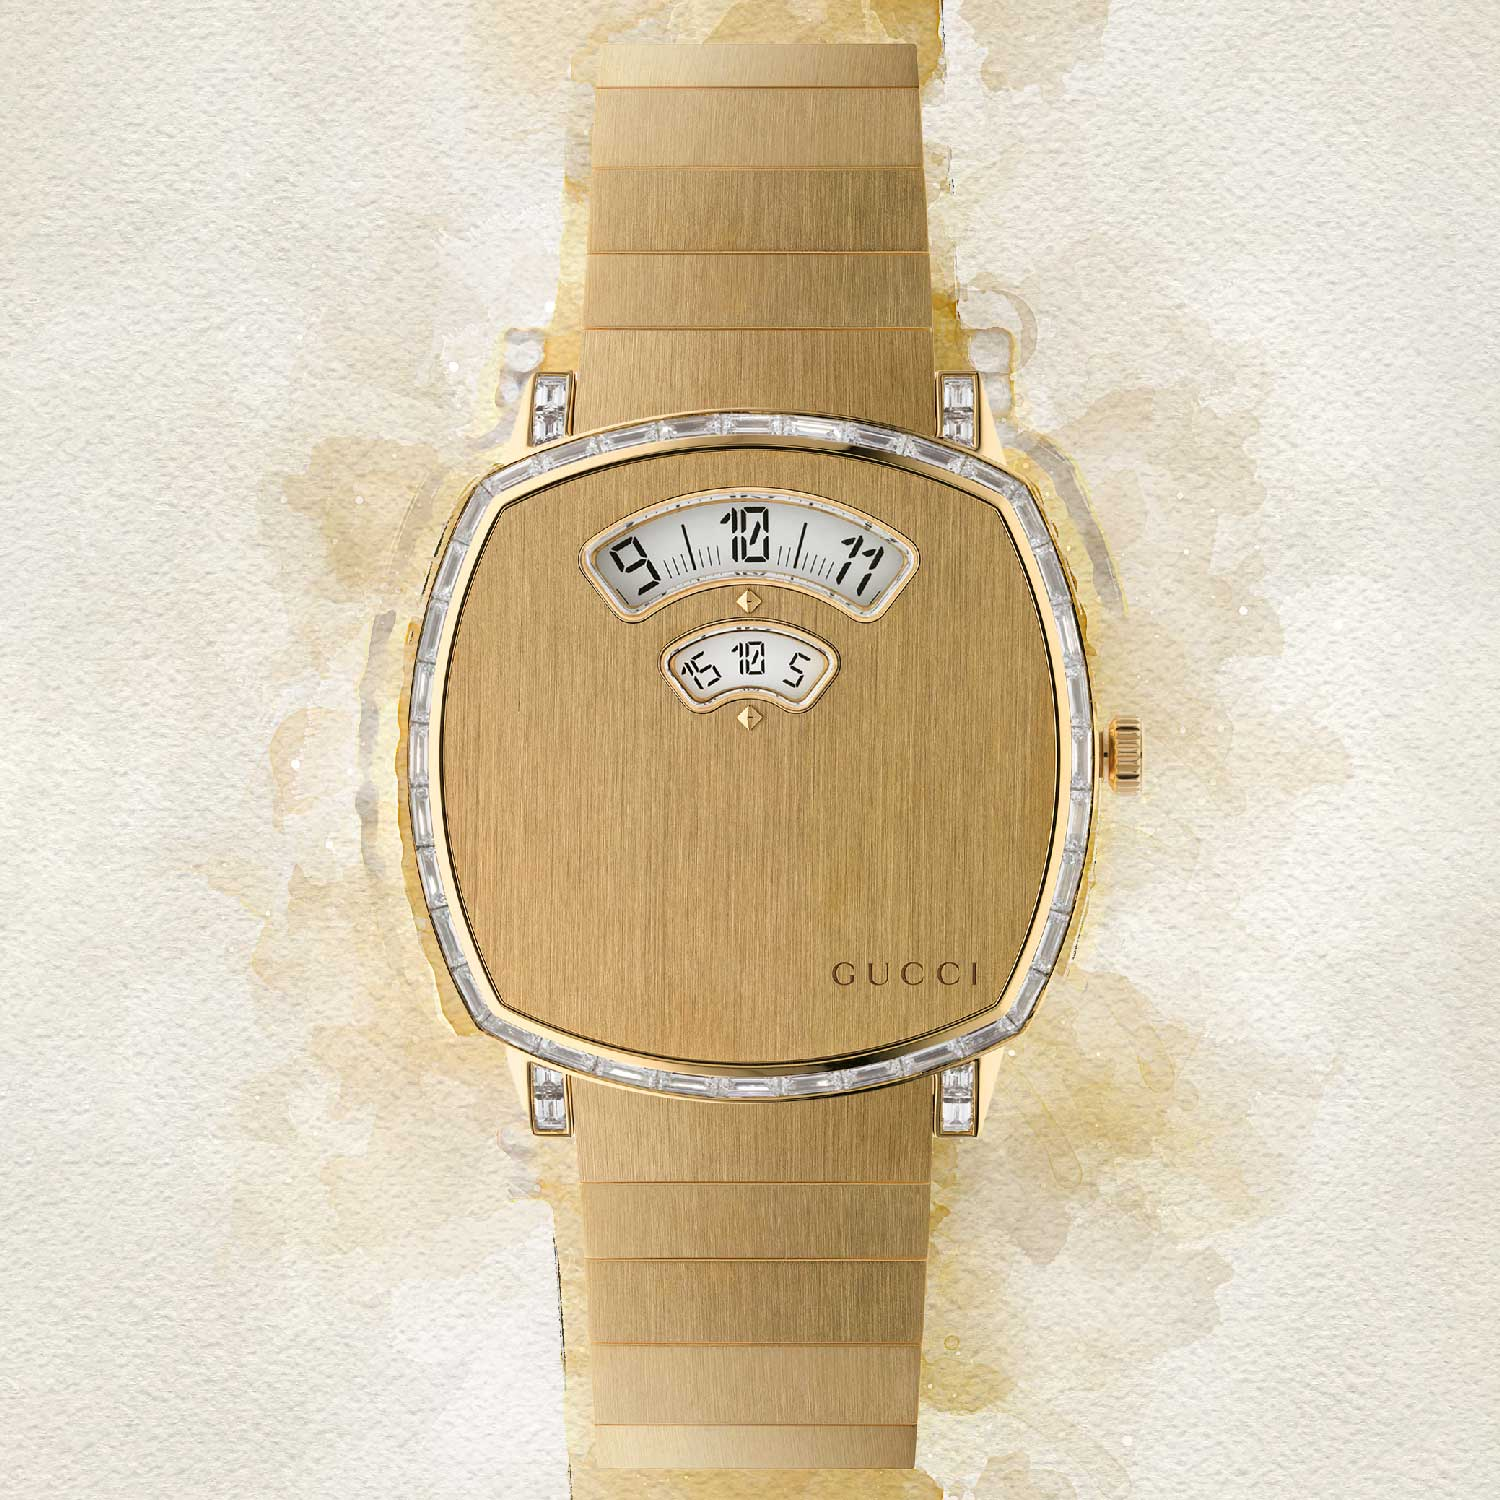 Grip featuring jump hour and minutes disc with 44 baguette-cut diamonds